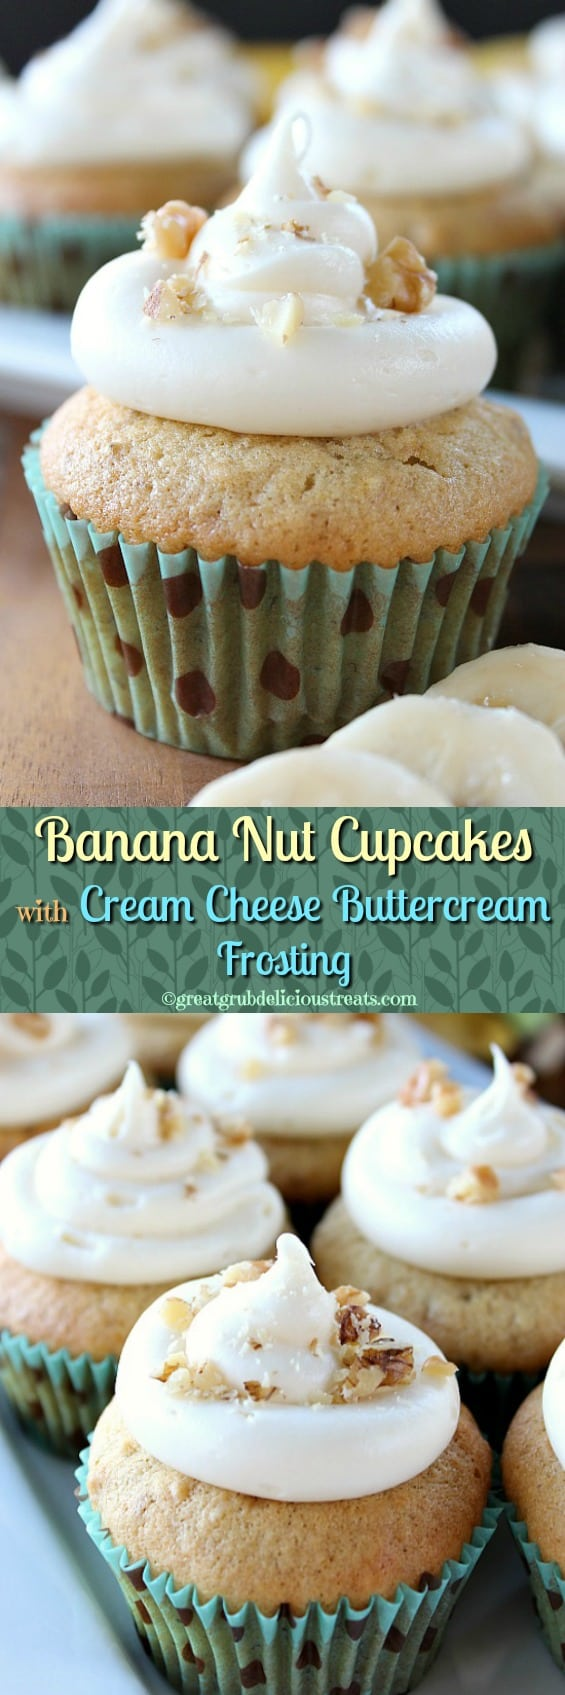 Banana Nut Cupcakes with Cream Cheese Buttercream Frosting ...